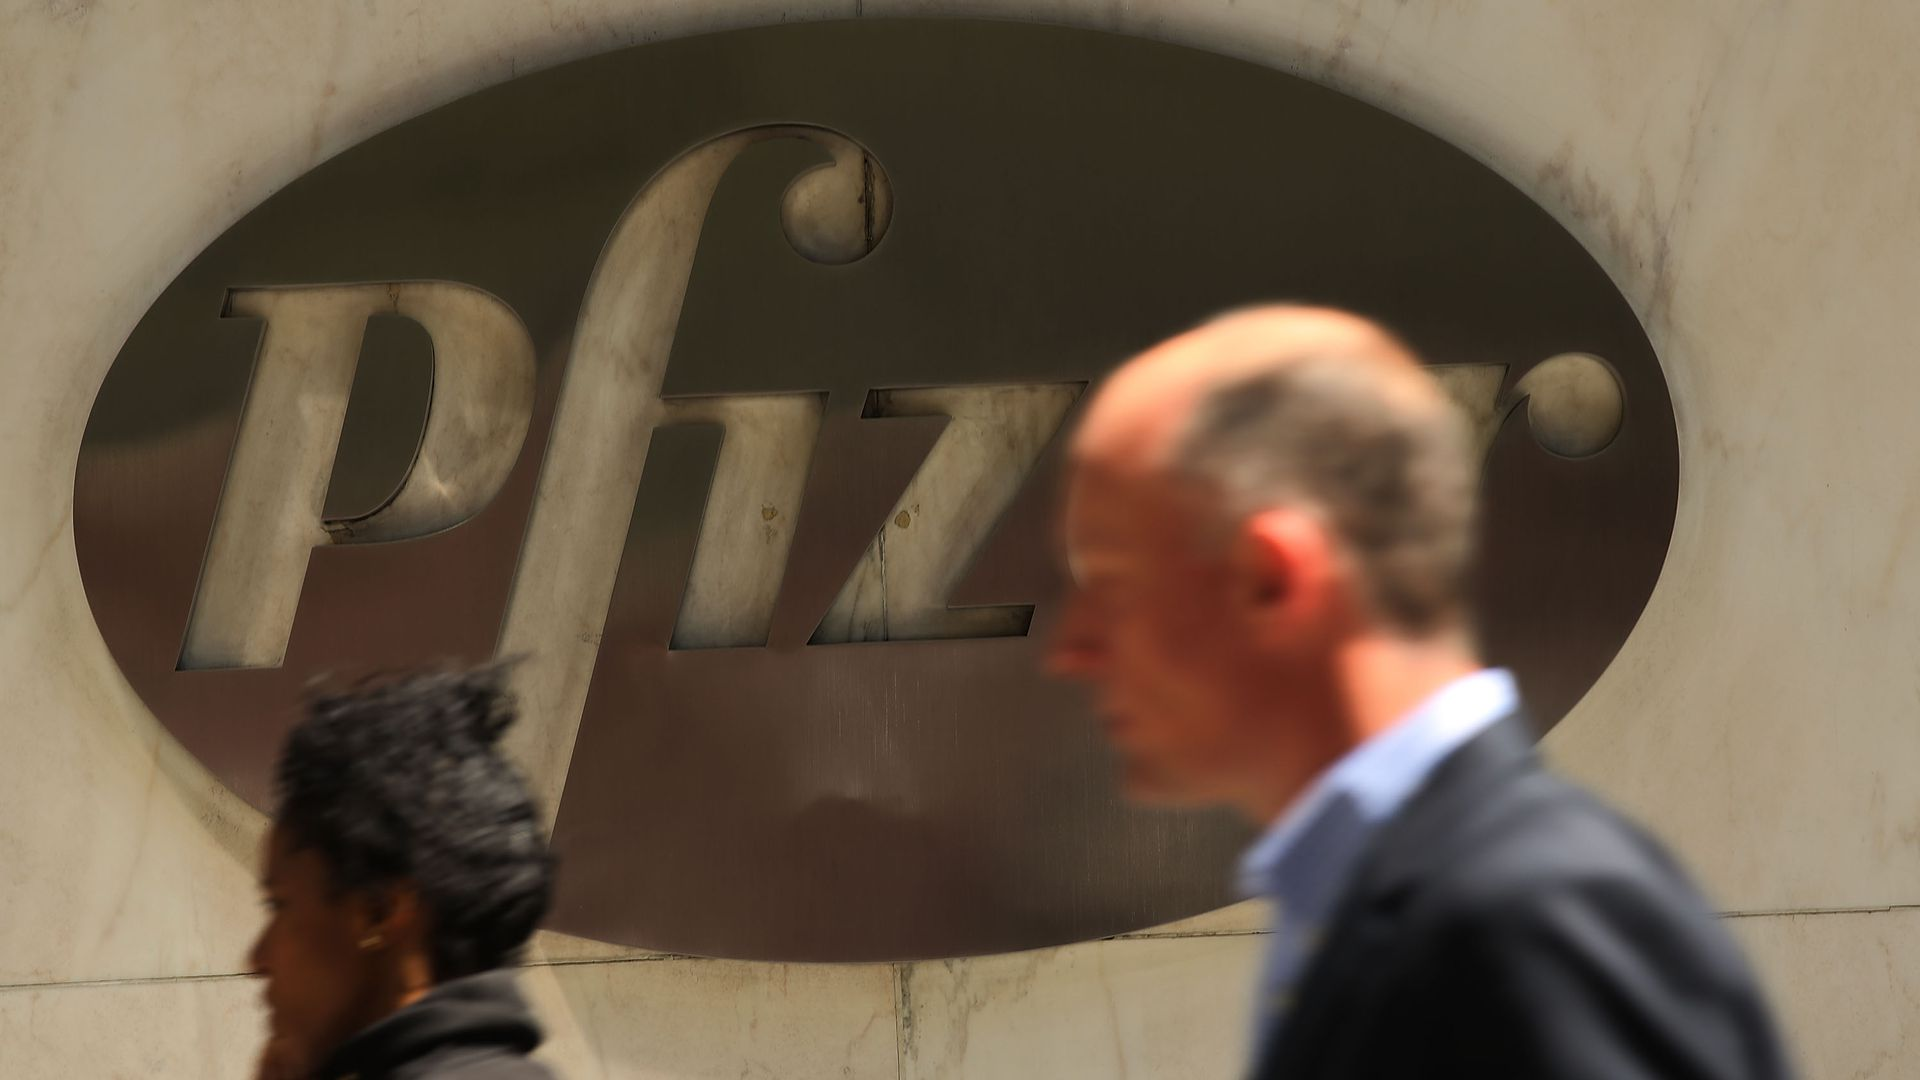 In this image, a man and a woman walk past a large metal logo for Pfizer